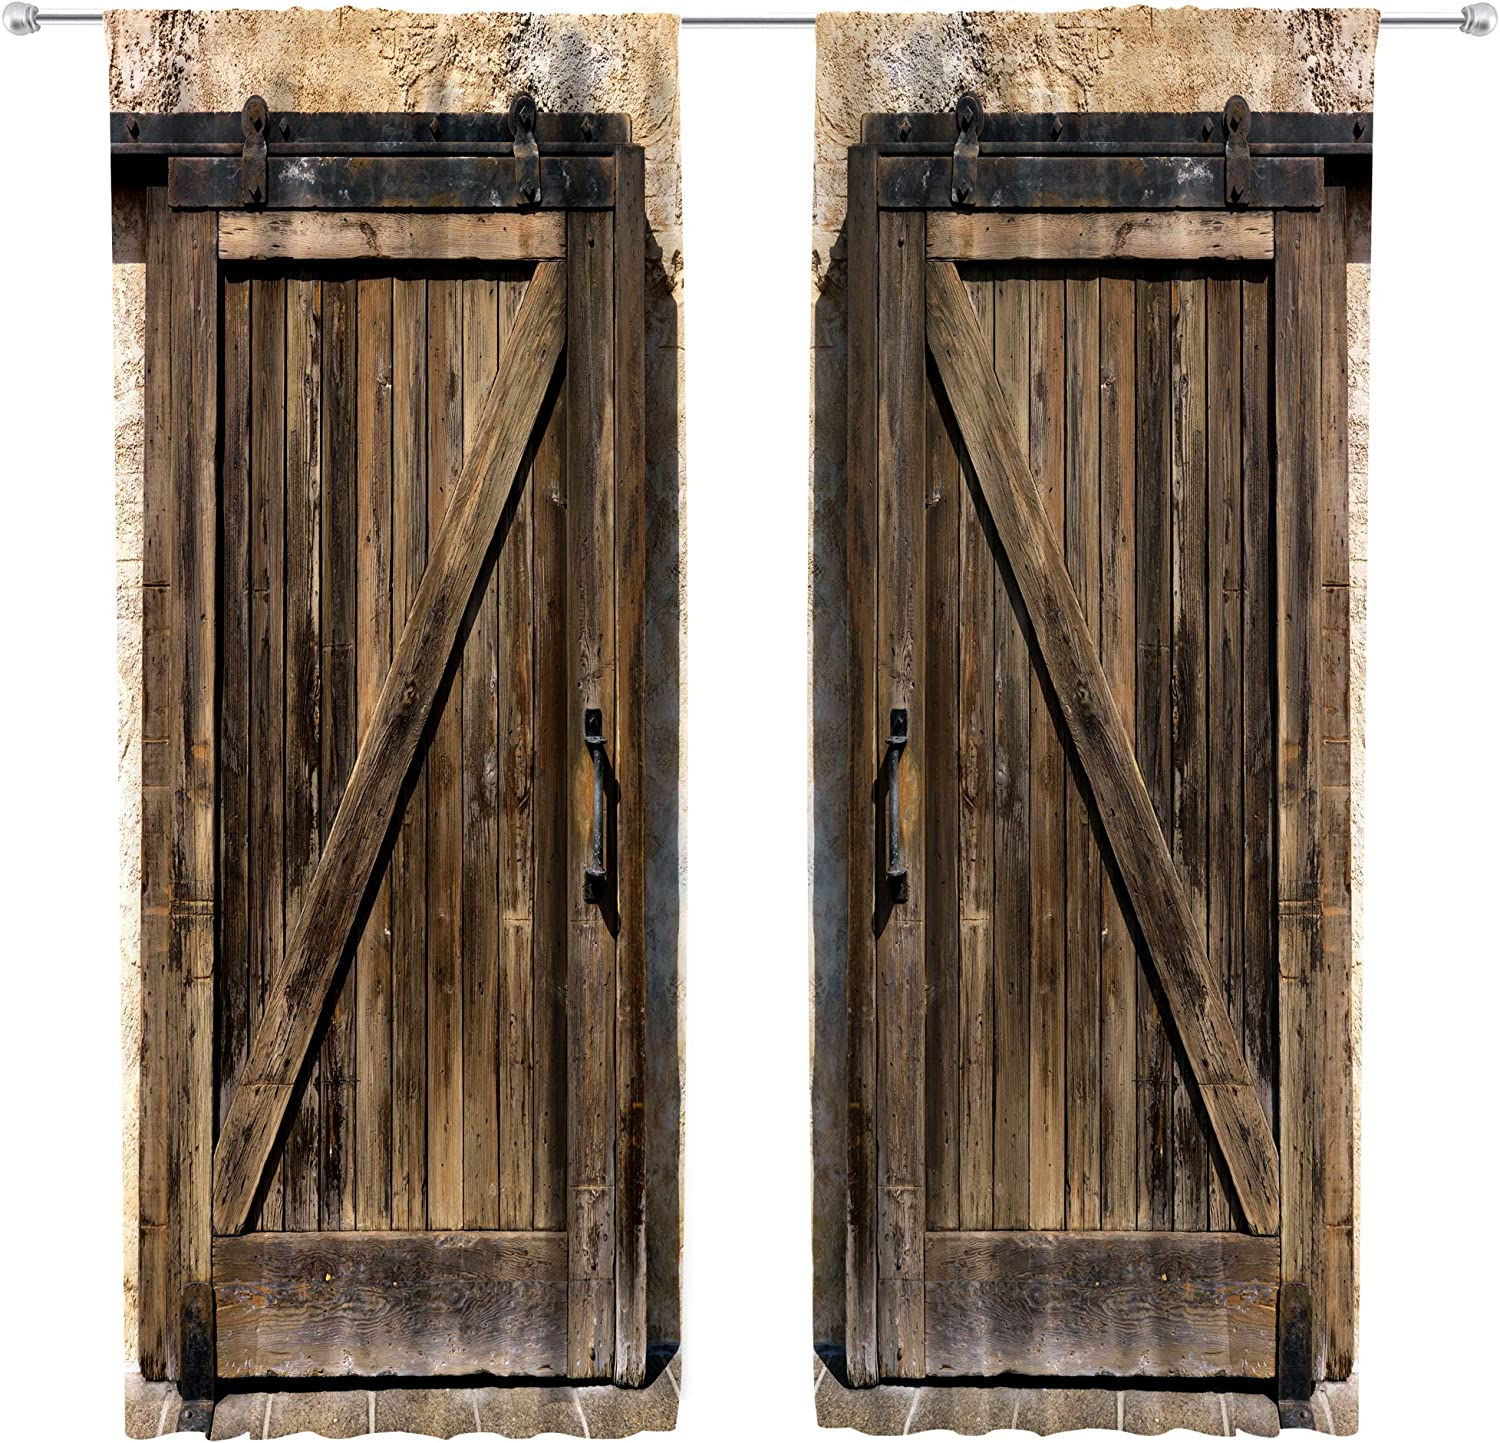 Riyidecor Retro Wooden Barn Door Curtains Rod Pocket Woods Brown Countryside Style Grunge Garage Lodge Farmhouse Printed Living Room Bedroom Window Drapes Treatment Fabric (2 Panels 52 x 84 Inch